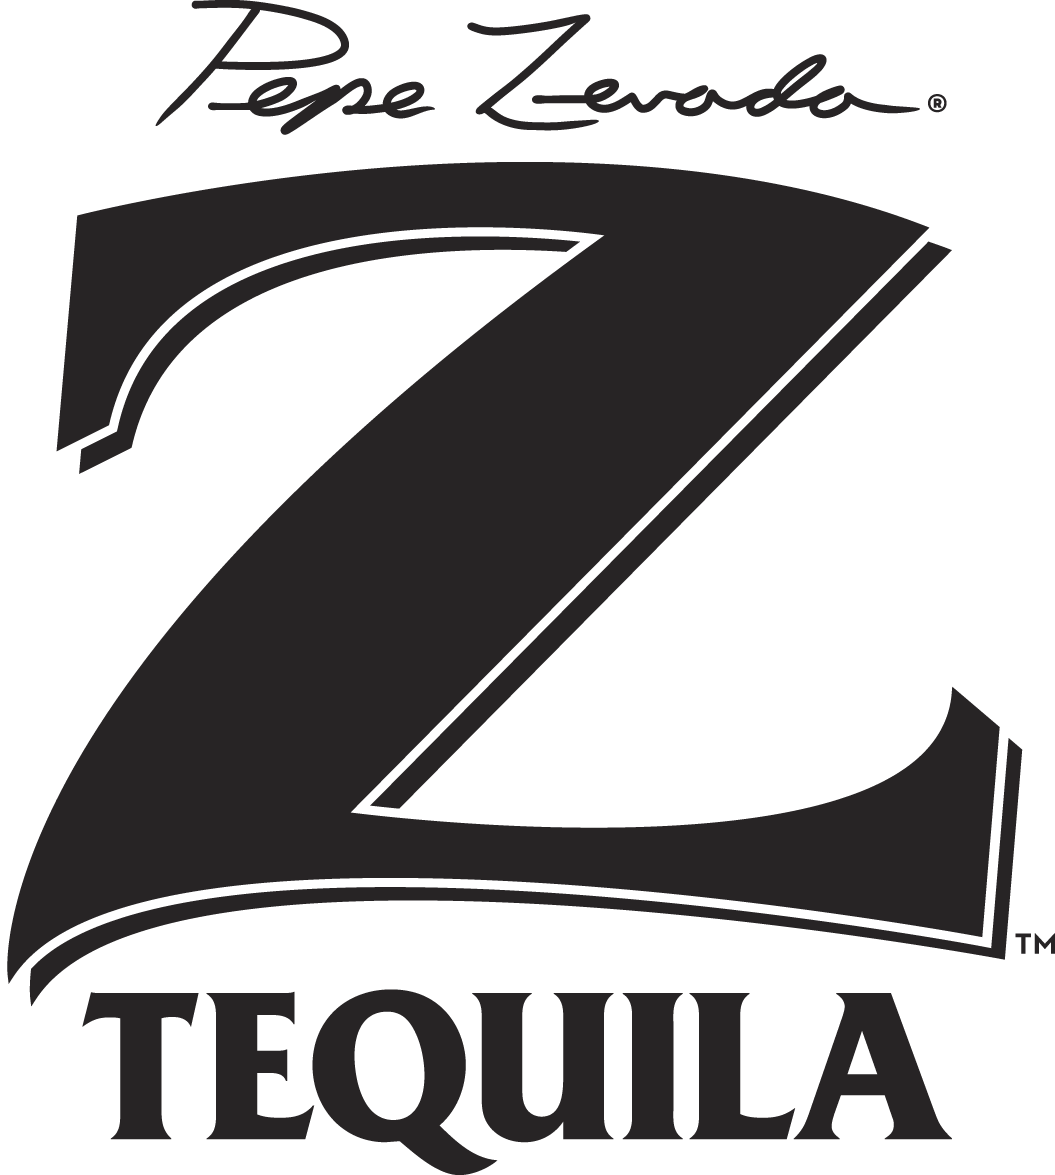 Z_Tequila_logo_Black_042512.png